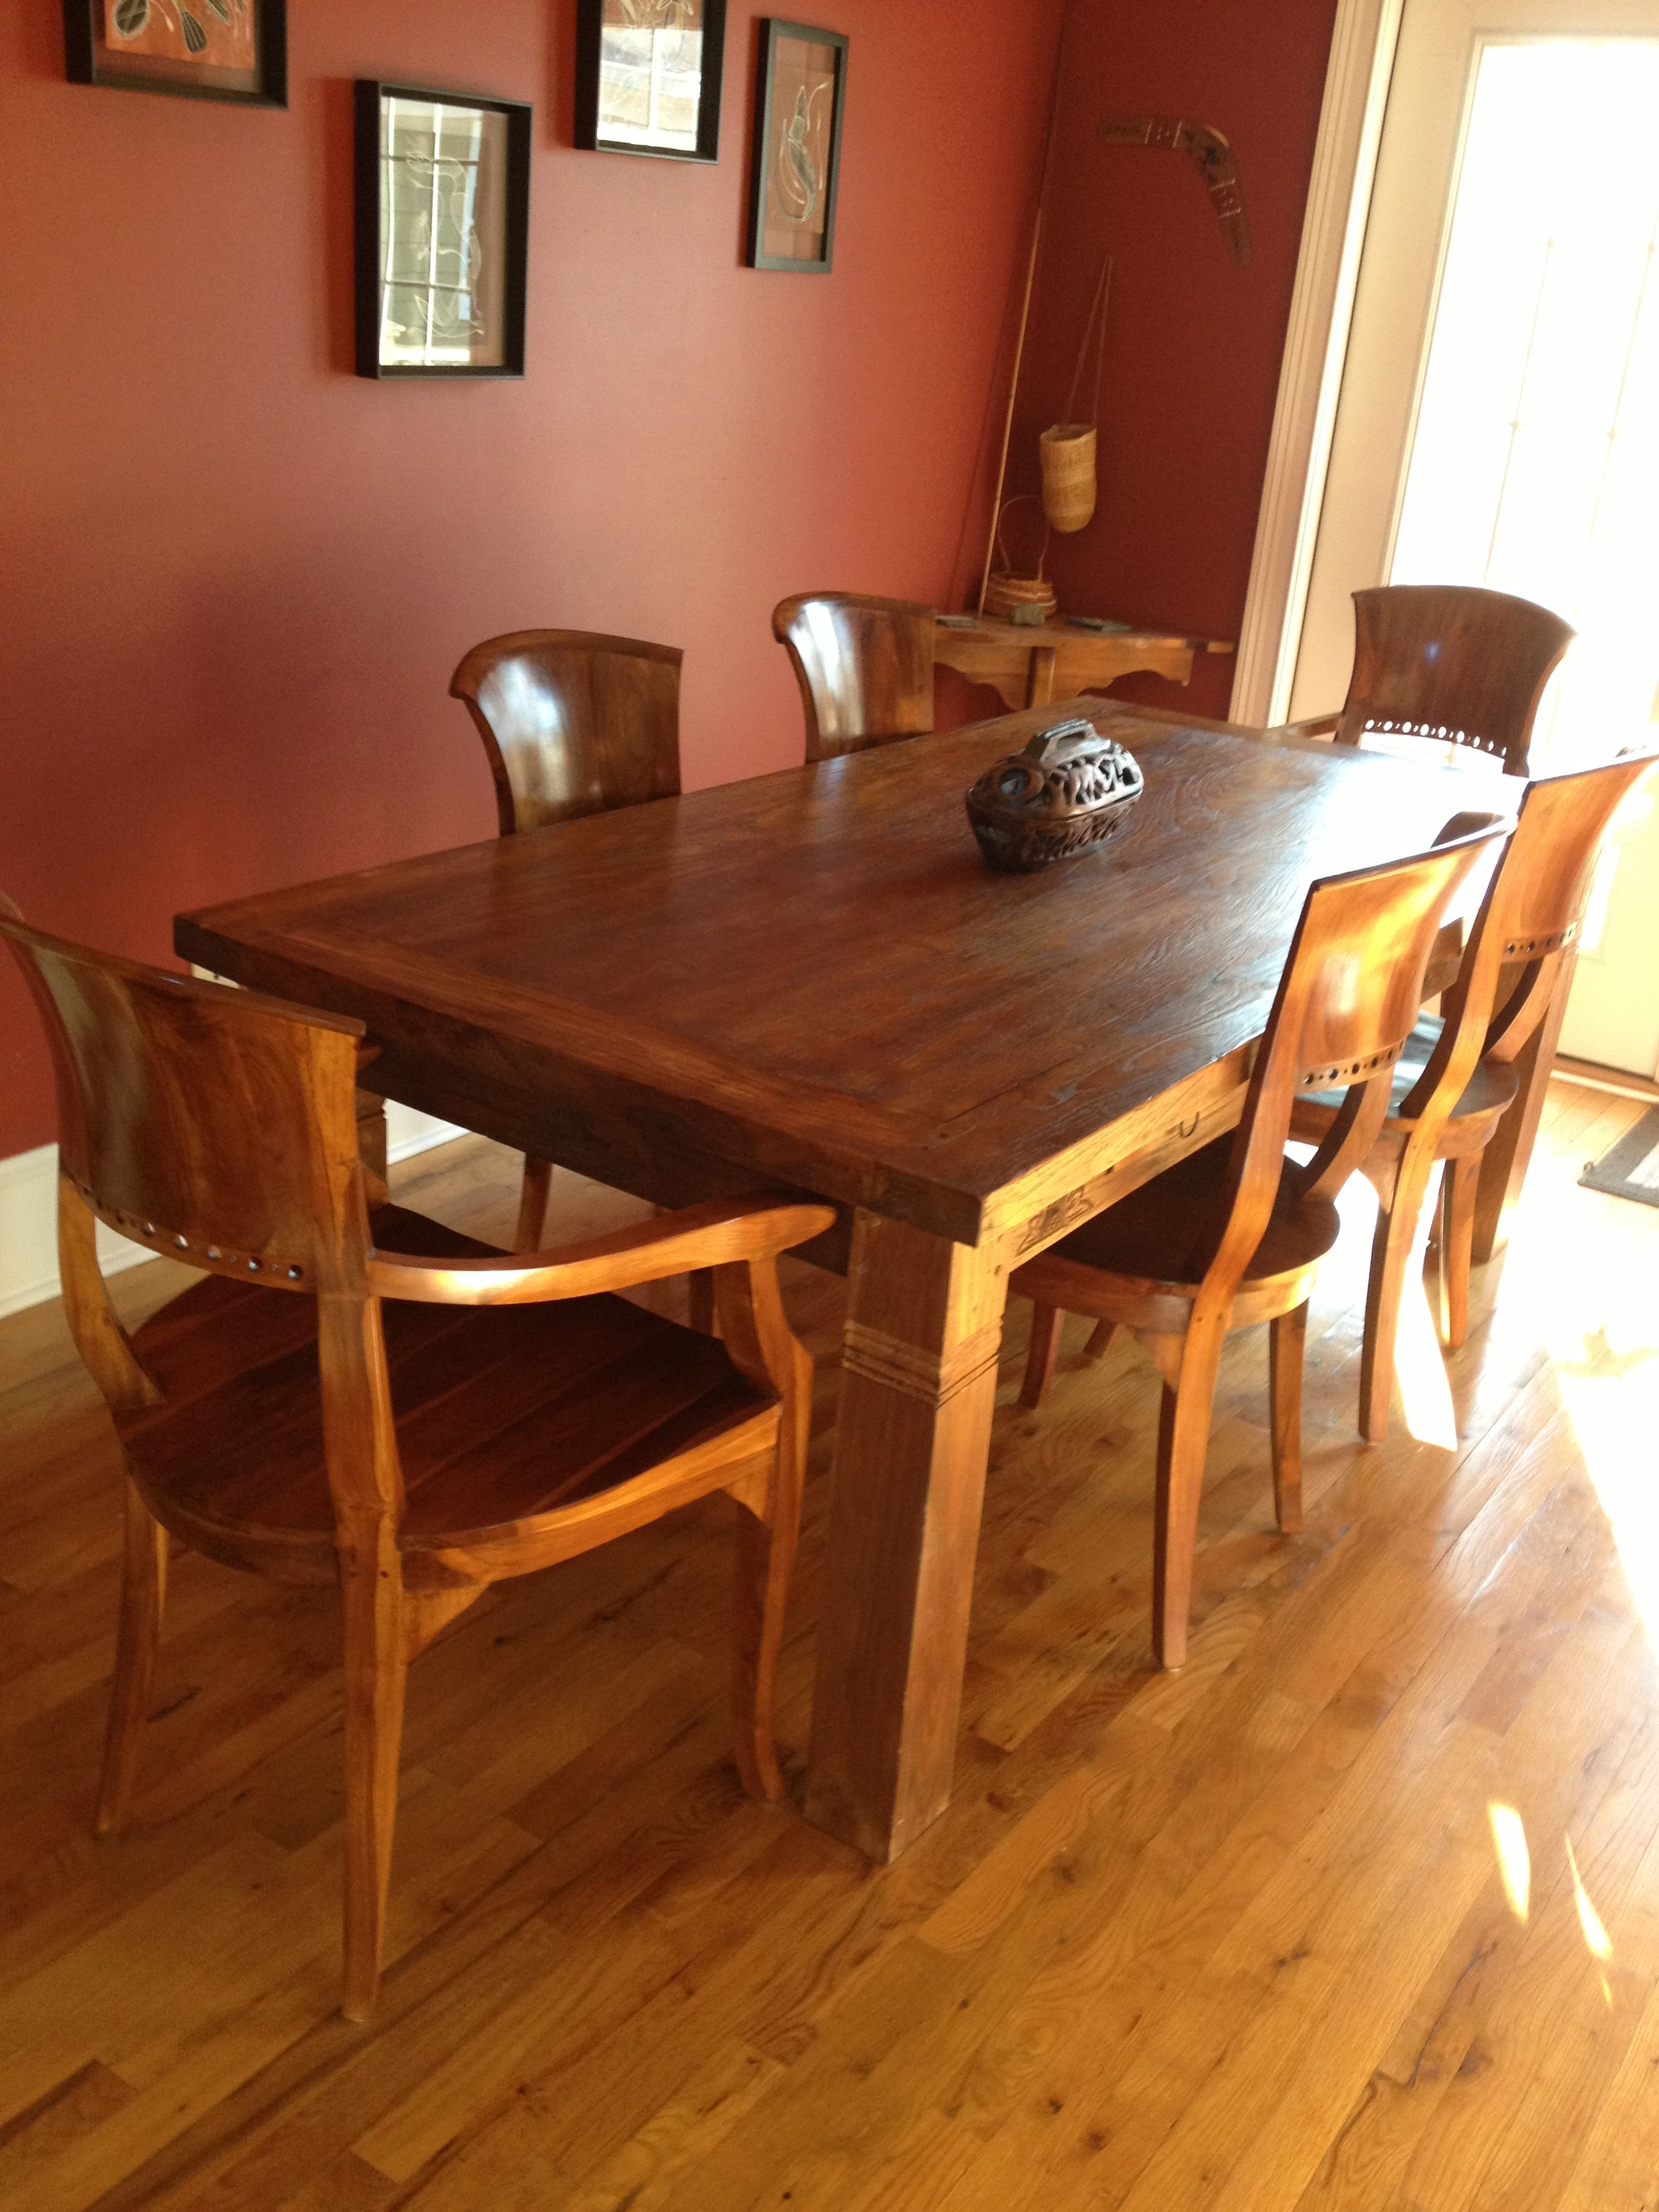 Client Photo Indonesian Teak Dining Table Teak Chairs Gado Gado - Indonesian teak dining table